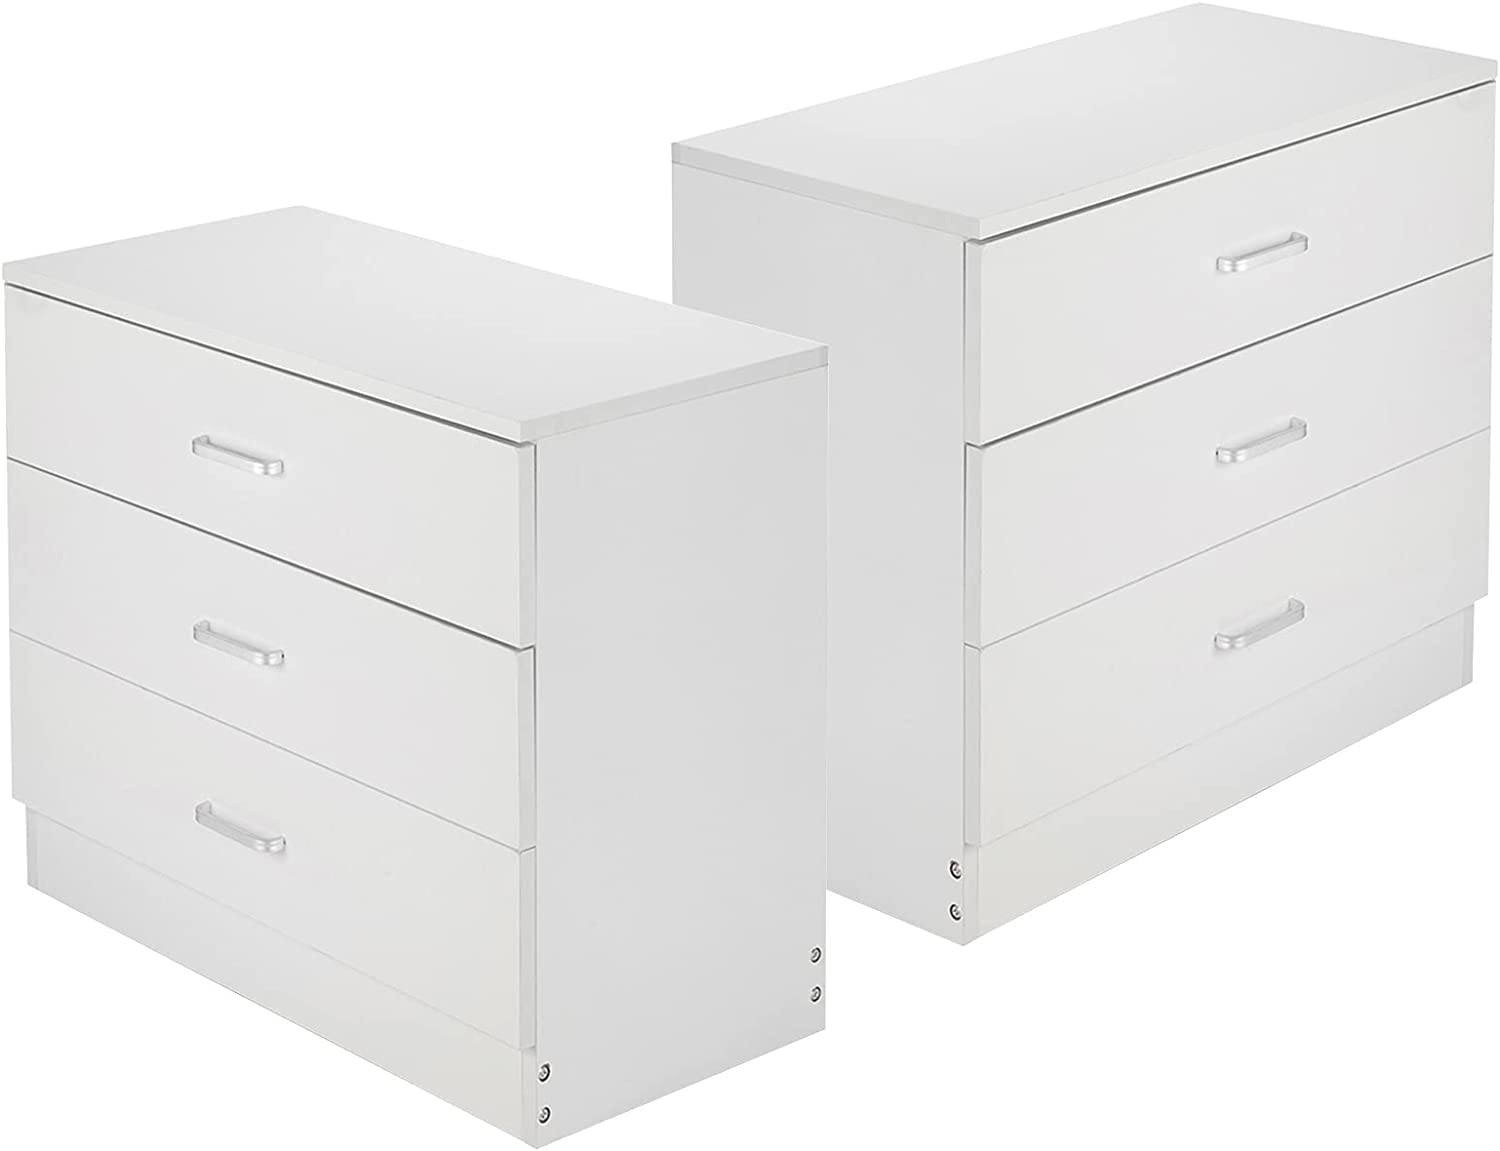 Set of 2 Nightstand White Wide 3 Drawers Dresser Wooden Storage Cabinet Drawers Chest Night End Table for Home Office Bedroom Livingroom Entryway (2 Pack, White, 3 Drawers)